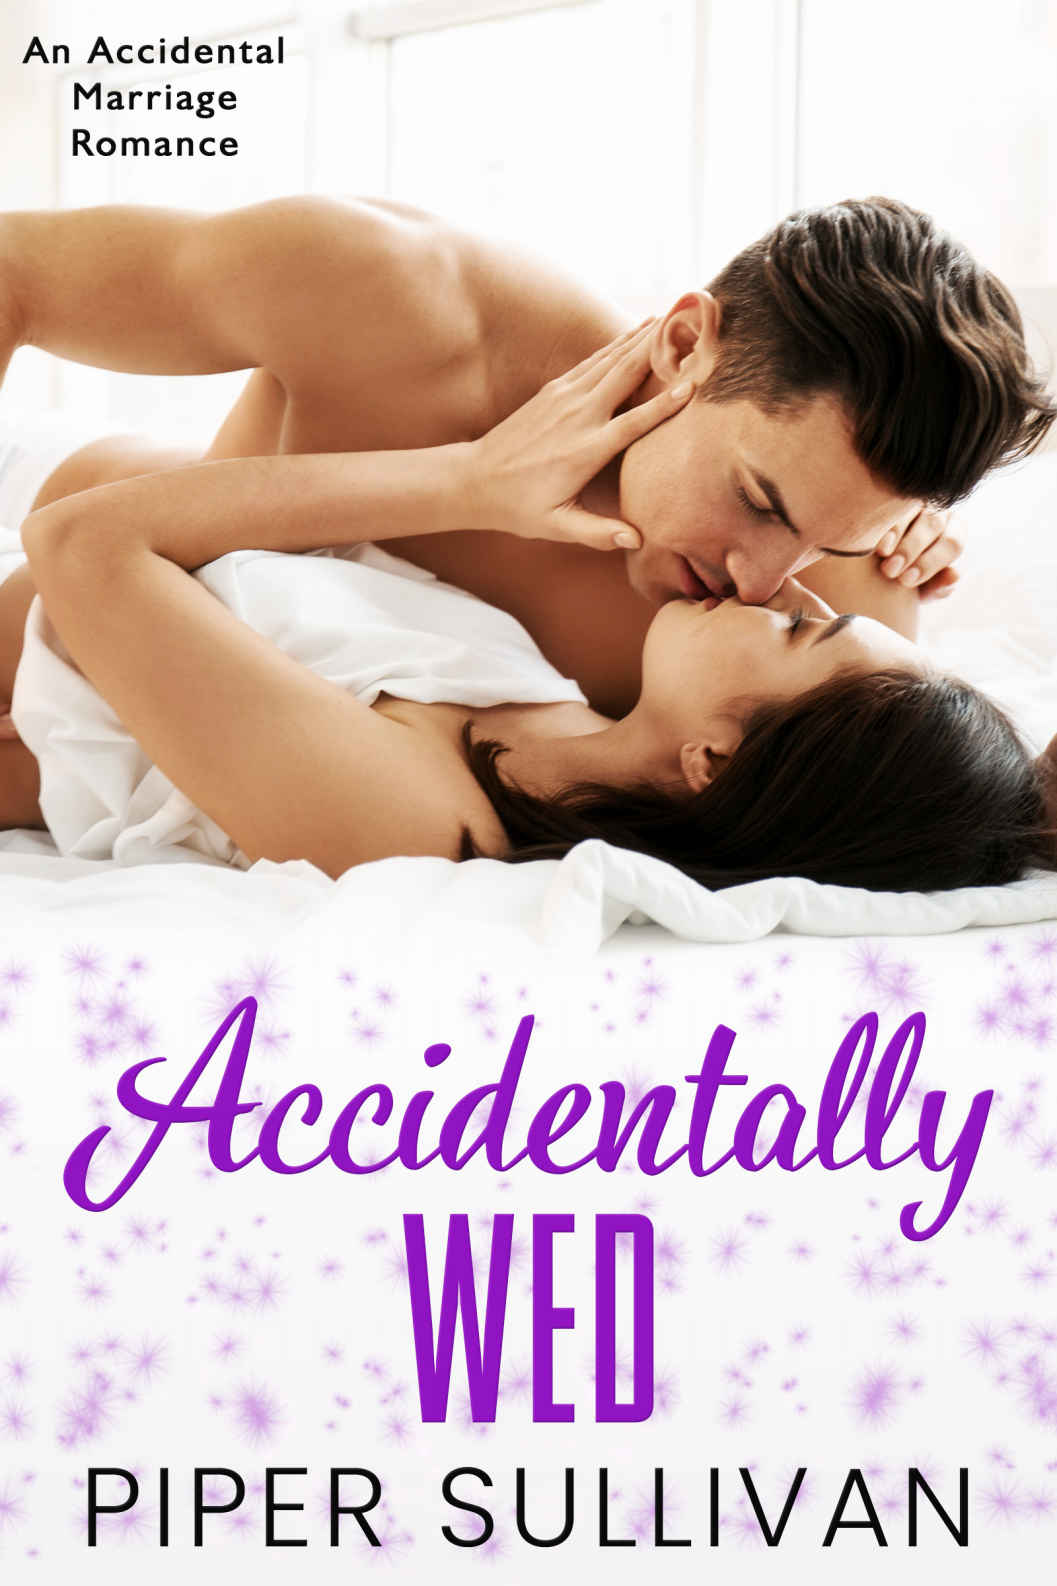 Accidentally Wed: An Accidental Marriage Romance 1st Edition Pdf Free Download